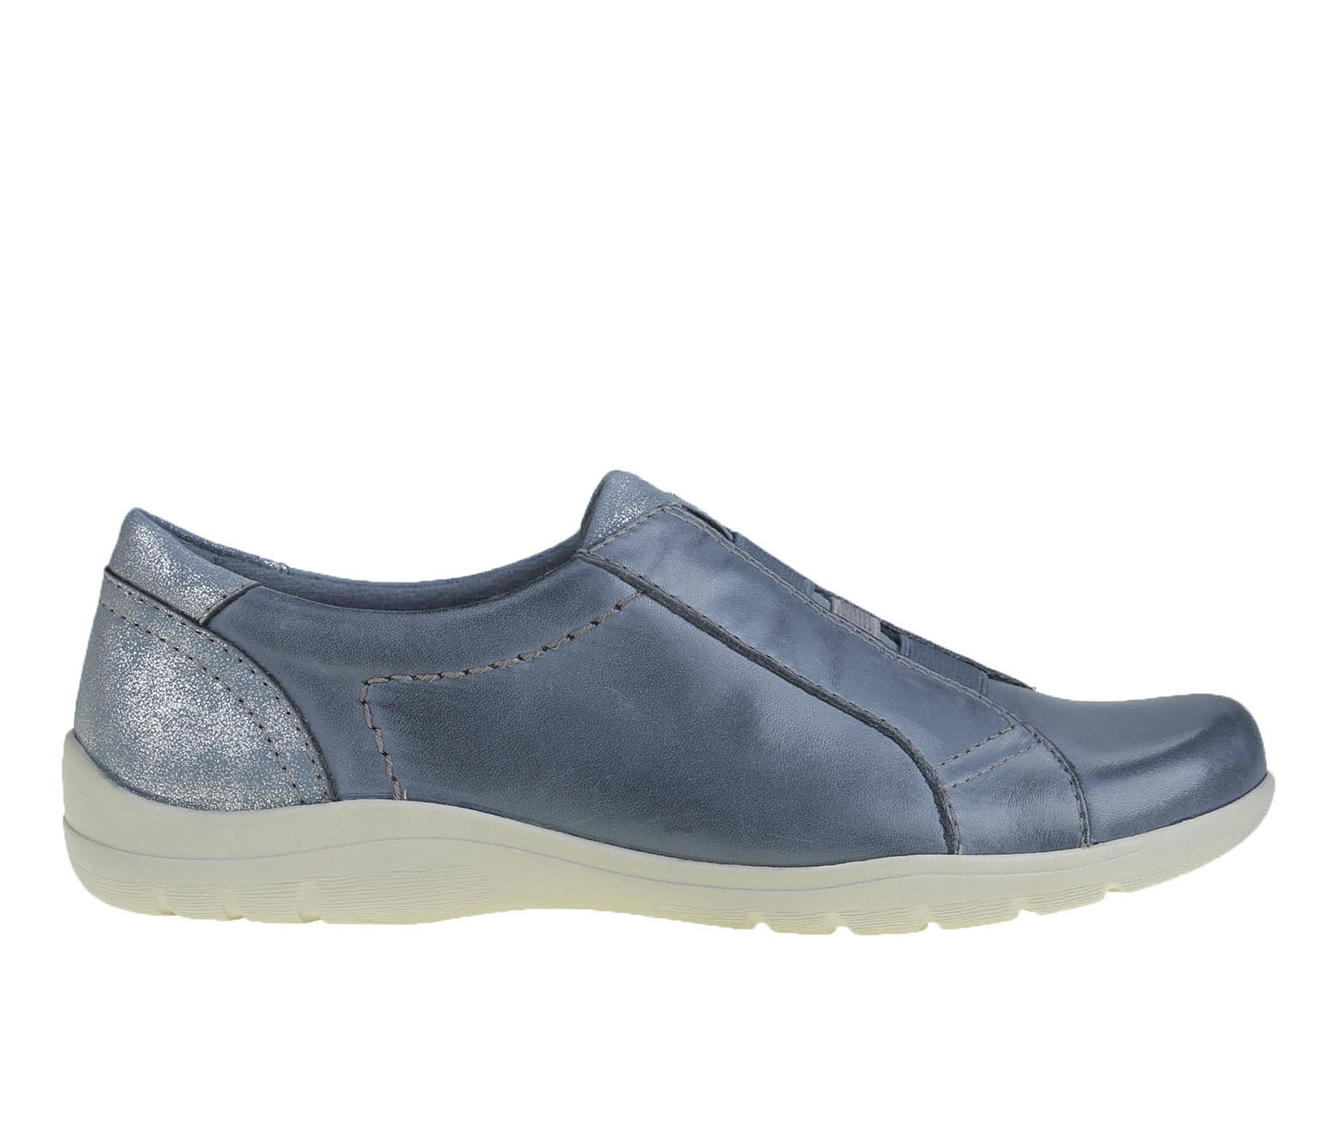 Earth Origins Rapid Toma Women's Shoe (Blue Leather)